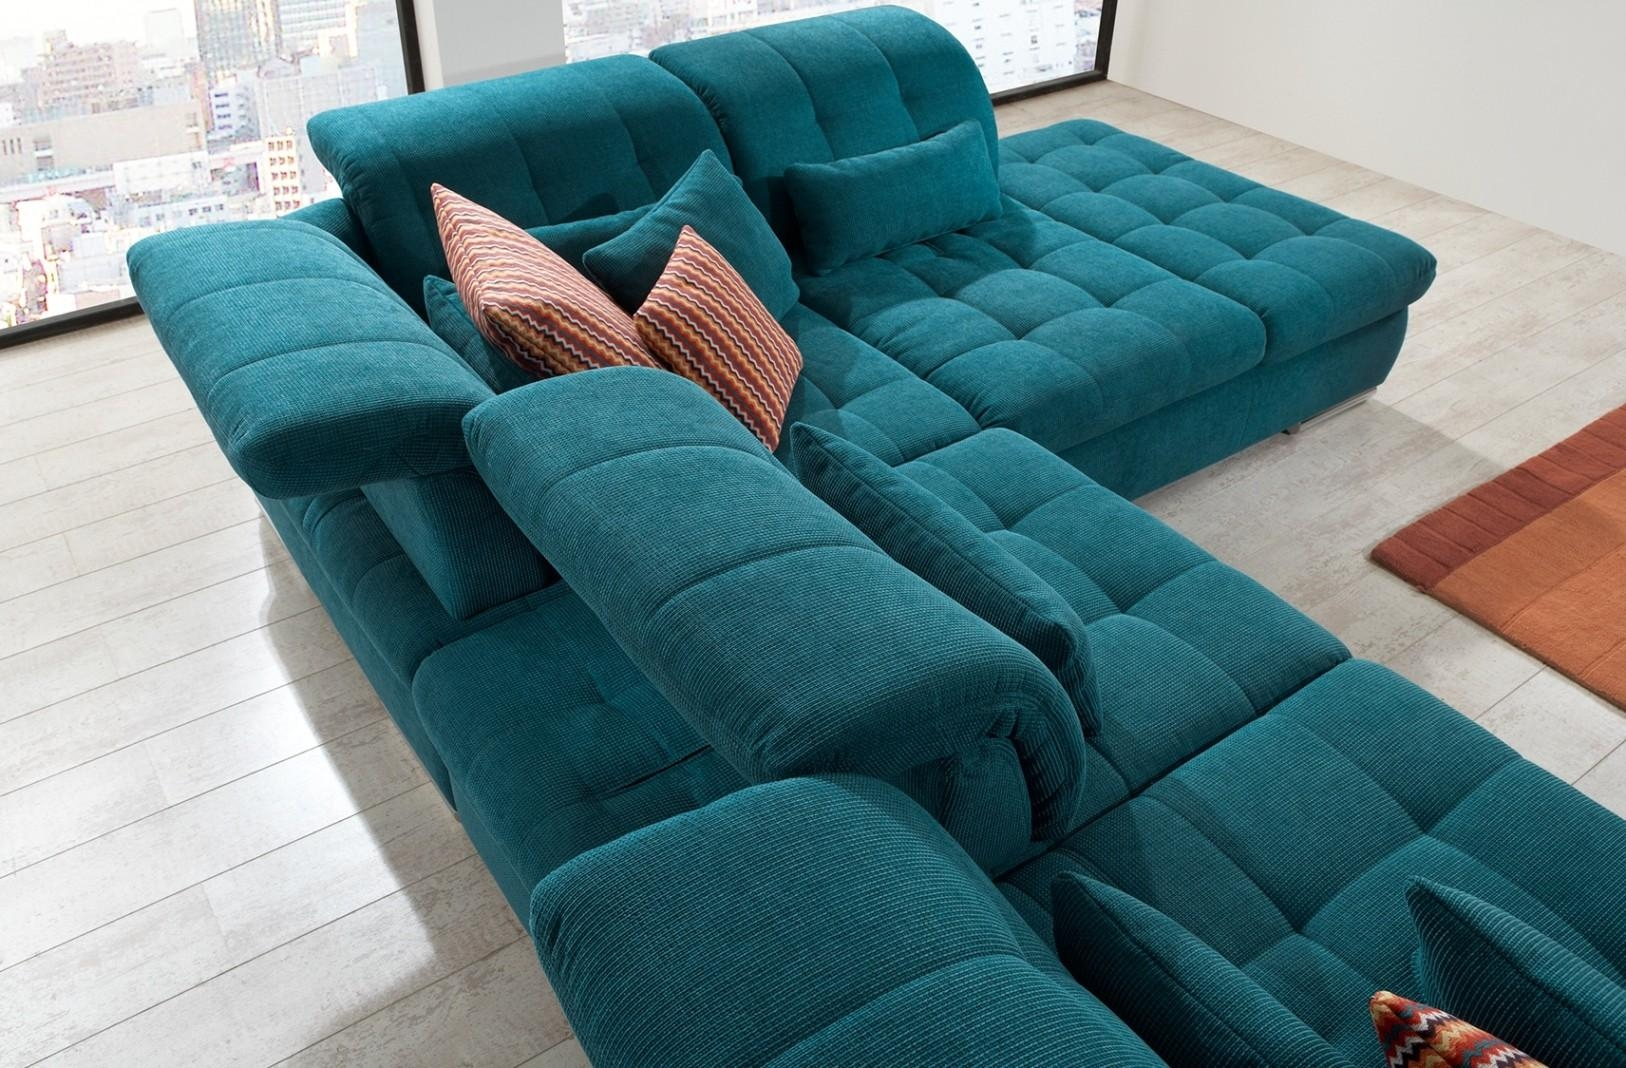 Alpine Sectional Sofa In Green Fabric Pertaining To Green Sectional Sofa (Image 2 of 15)